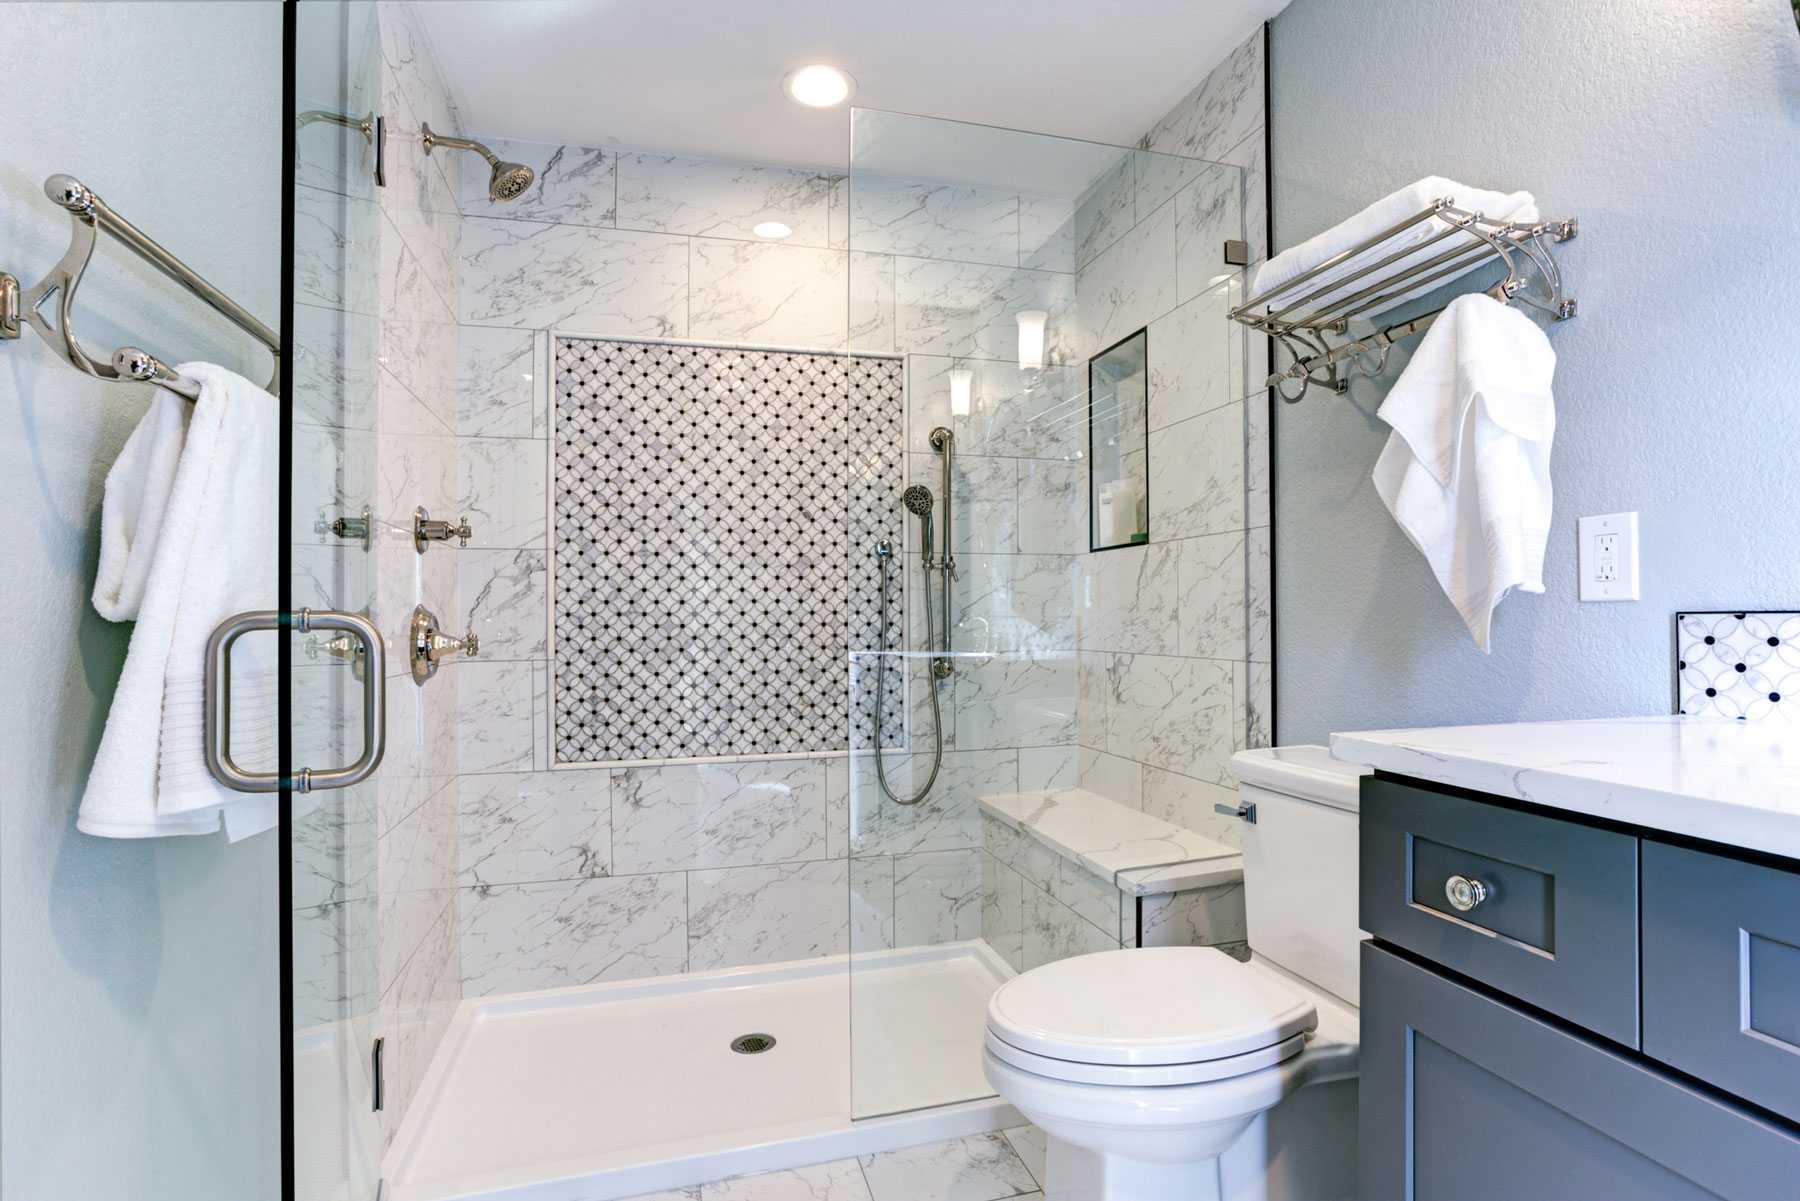 Bathroom Design Tricks For A Cleaner Looking Bathroom Real Simple